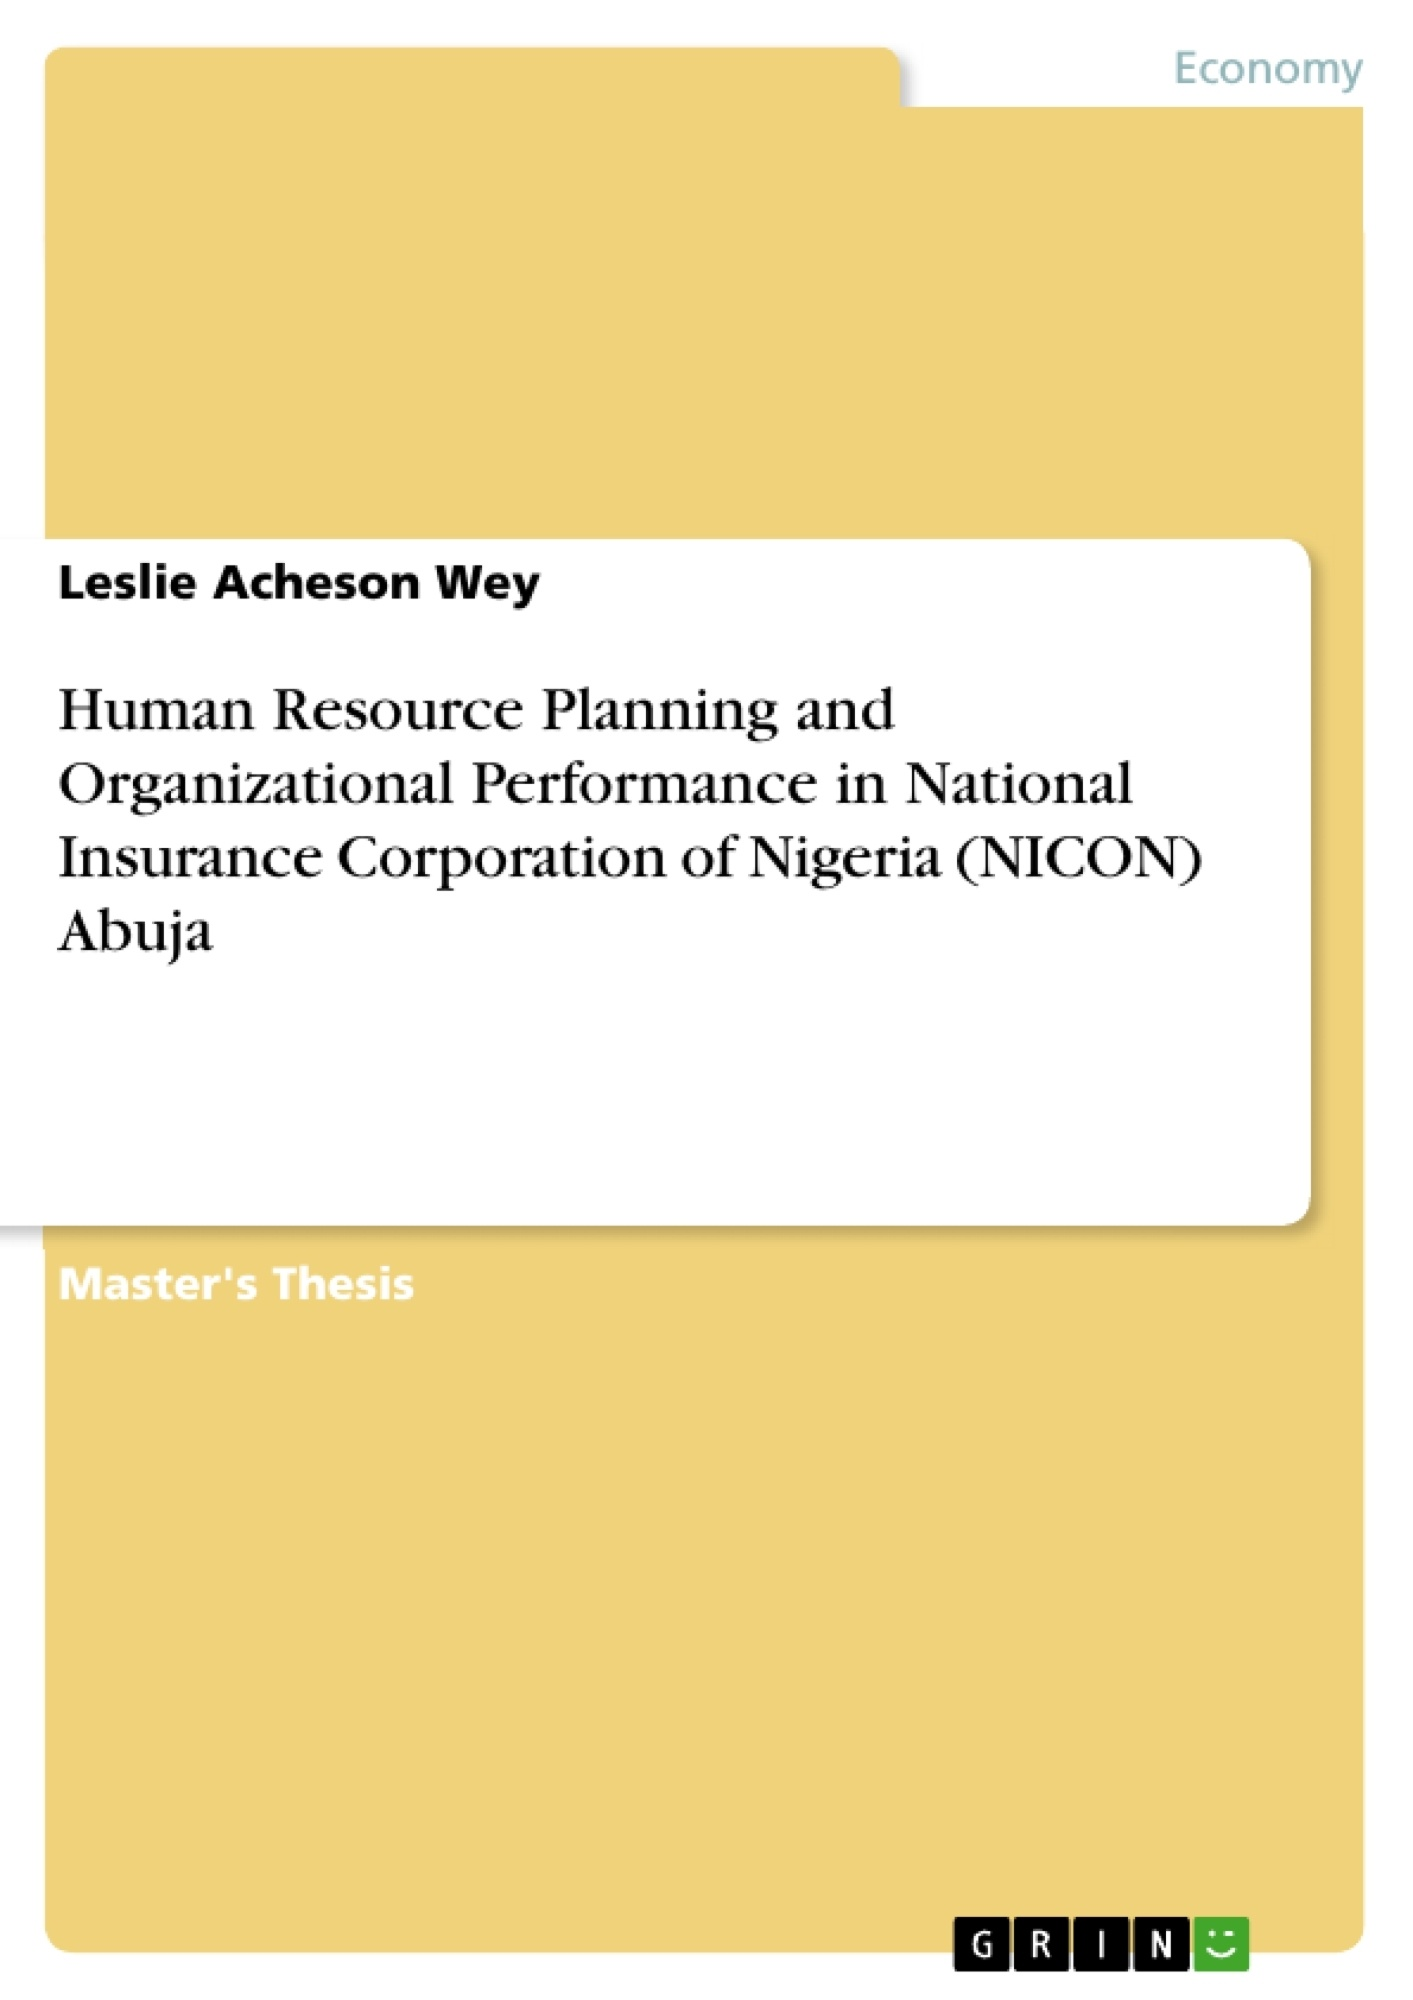 Title: Human Resource Planning and Organizational Performance in National Insurance Corporation of Nigeria (NICON) Abuja